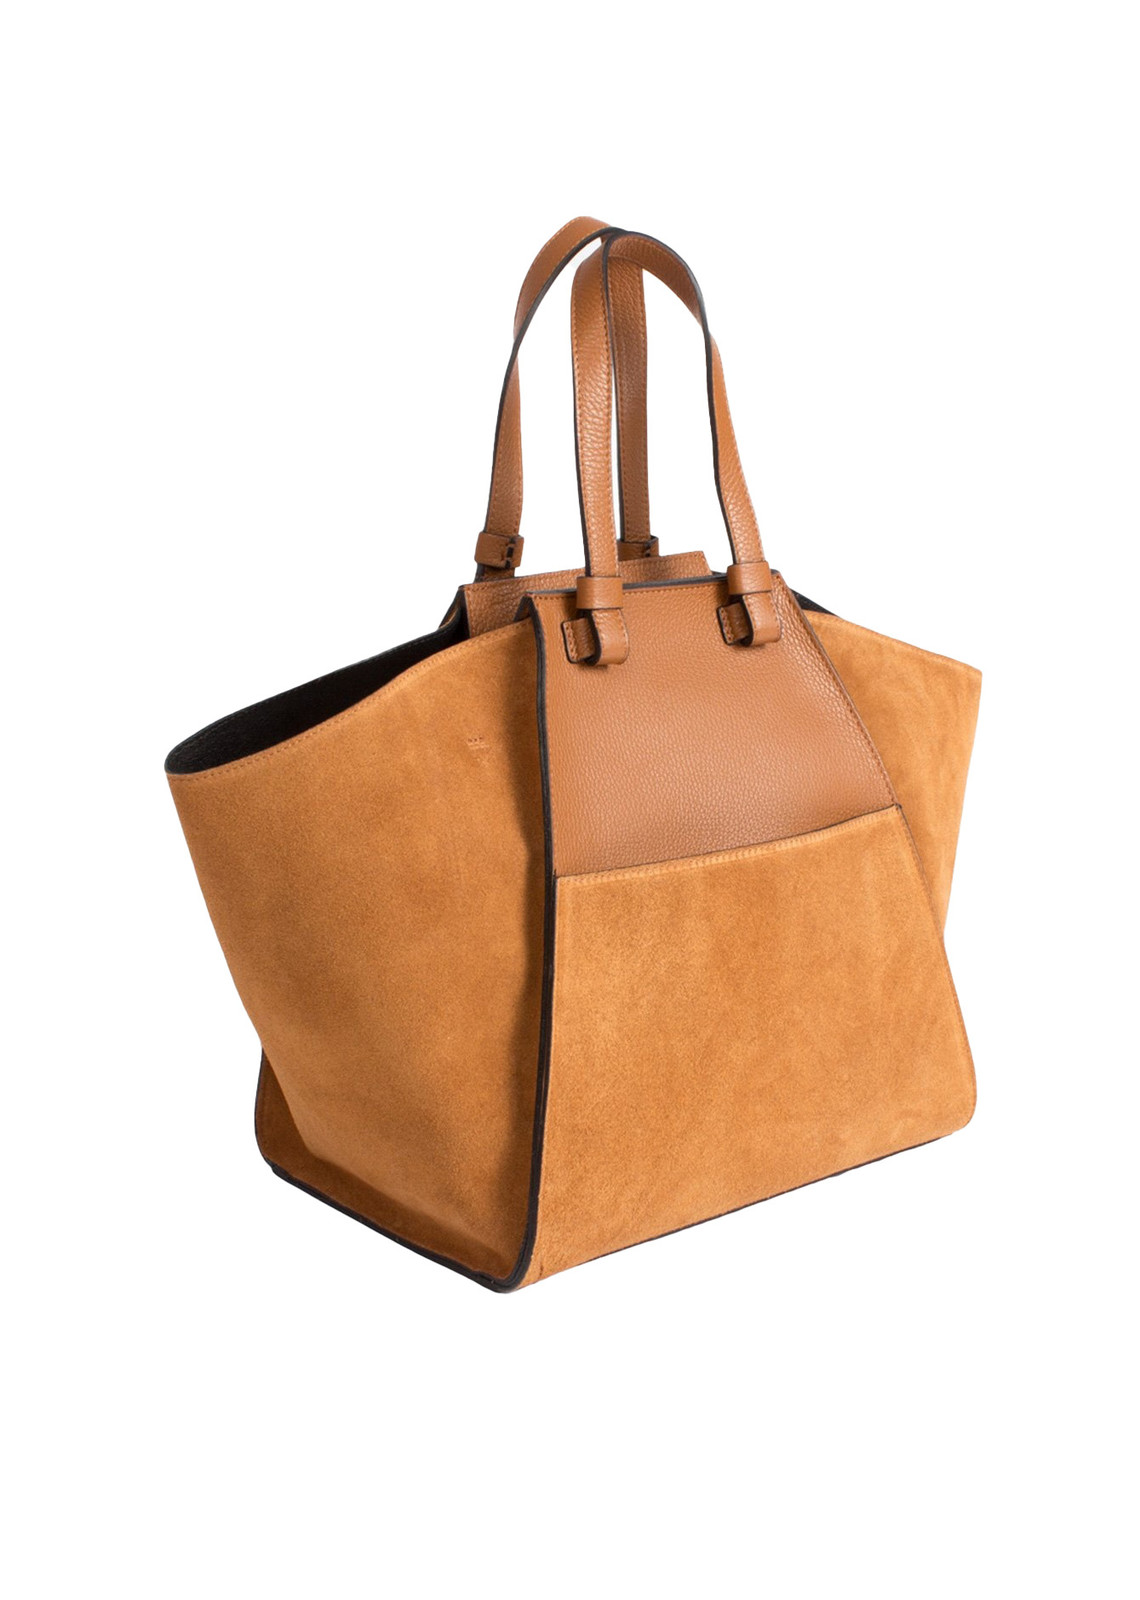 Luxury bag camel